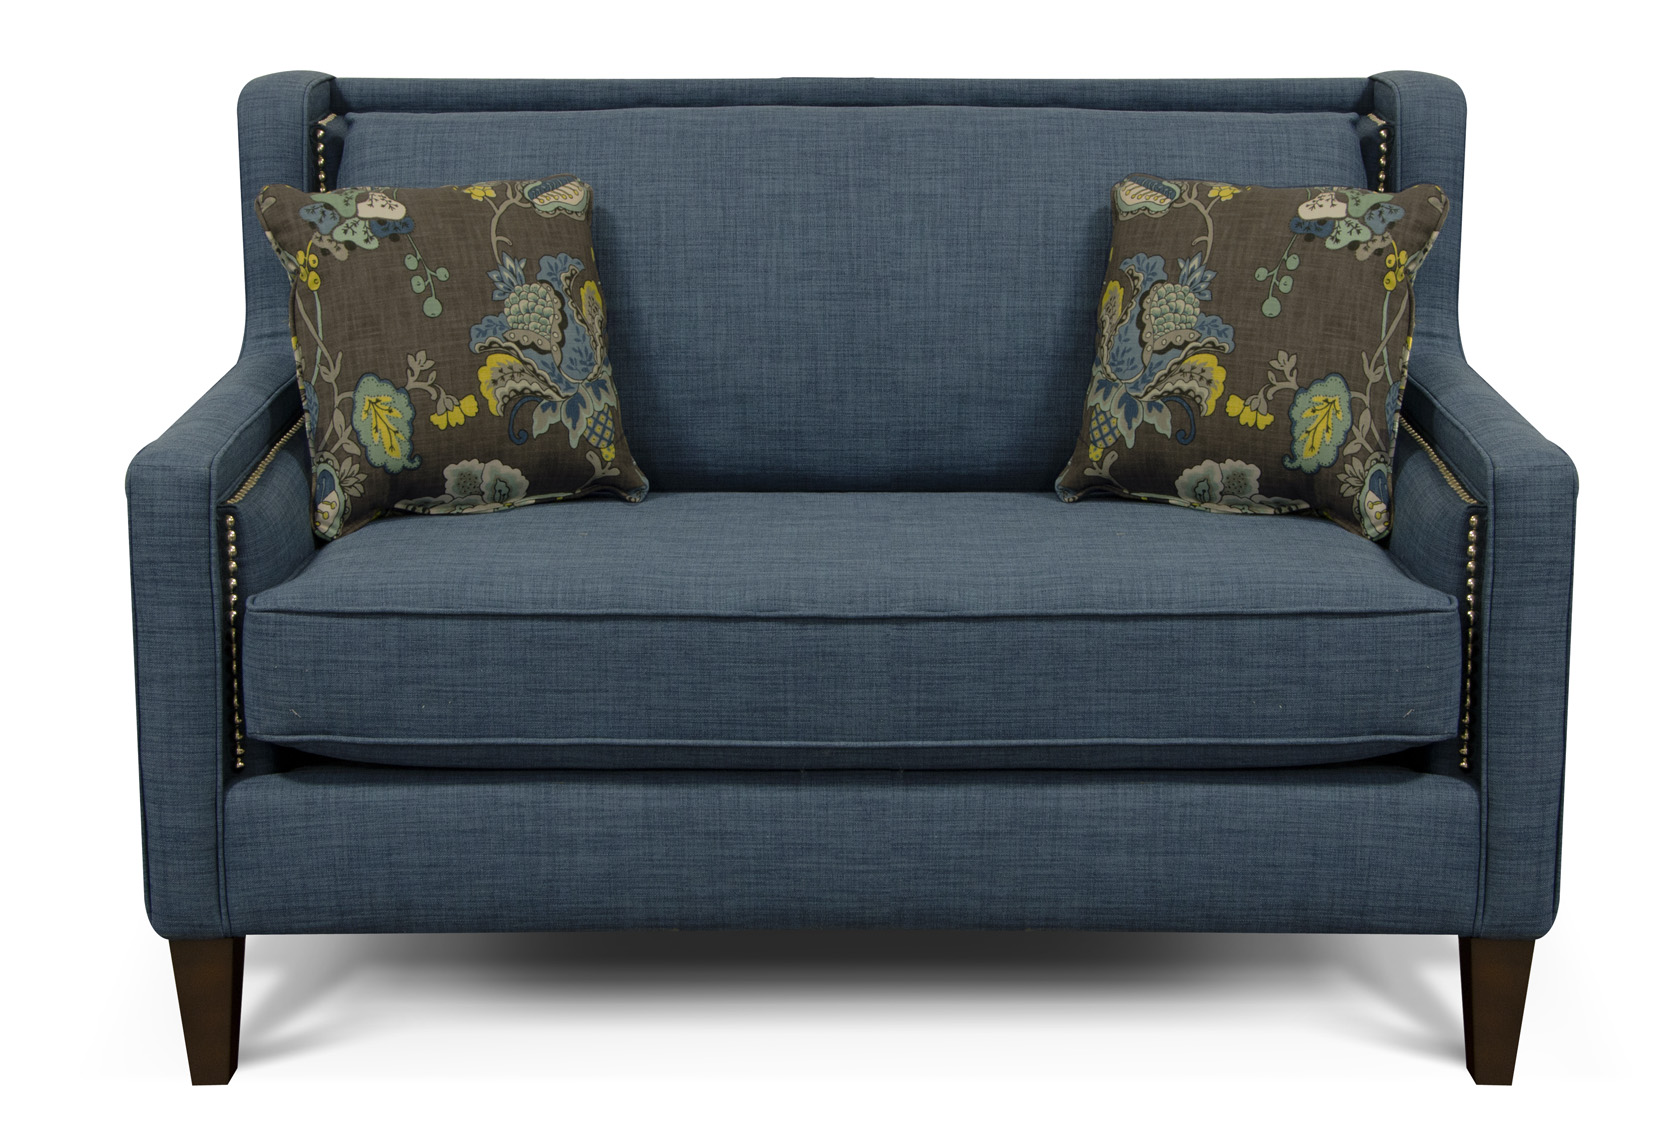 england-furniture-reviews-Roma-Blue-Leopold-Aquamarine-loveseat